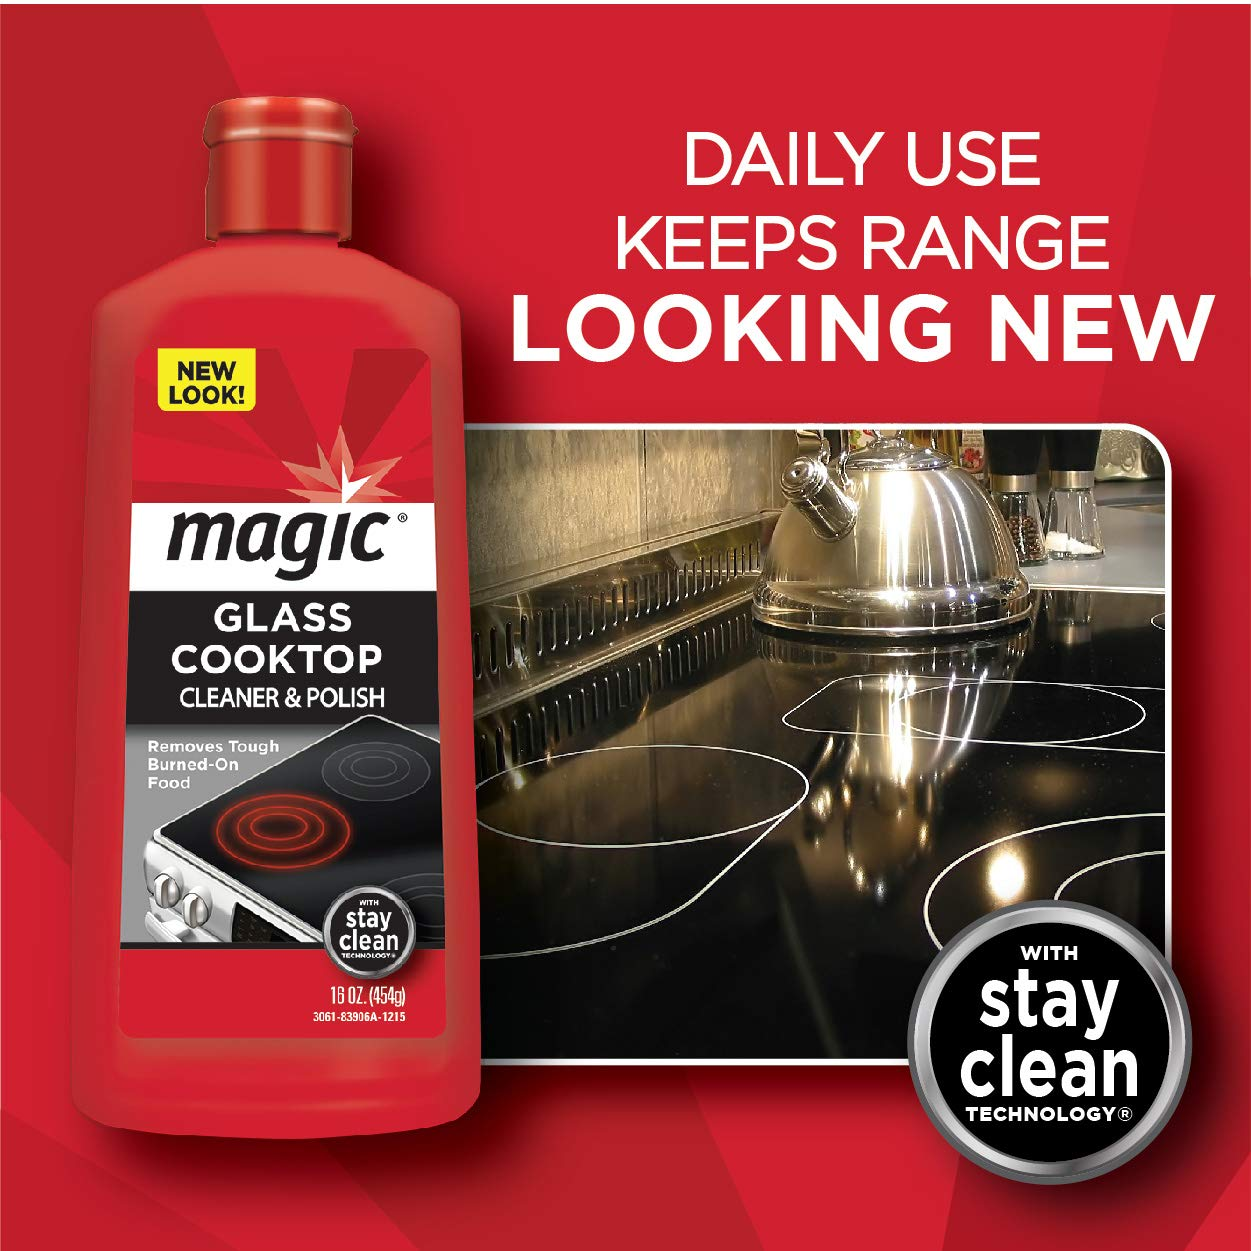 MAGIC Glass Cooktop Cream Cleaner & Polish - 16 oz. and Daily Cleaner - 14 Ounce - Cleans and Protects Glass and Ceramic Smooth Top Ranges with its Gentle Formula by MAGIC (Image #2)